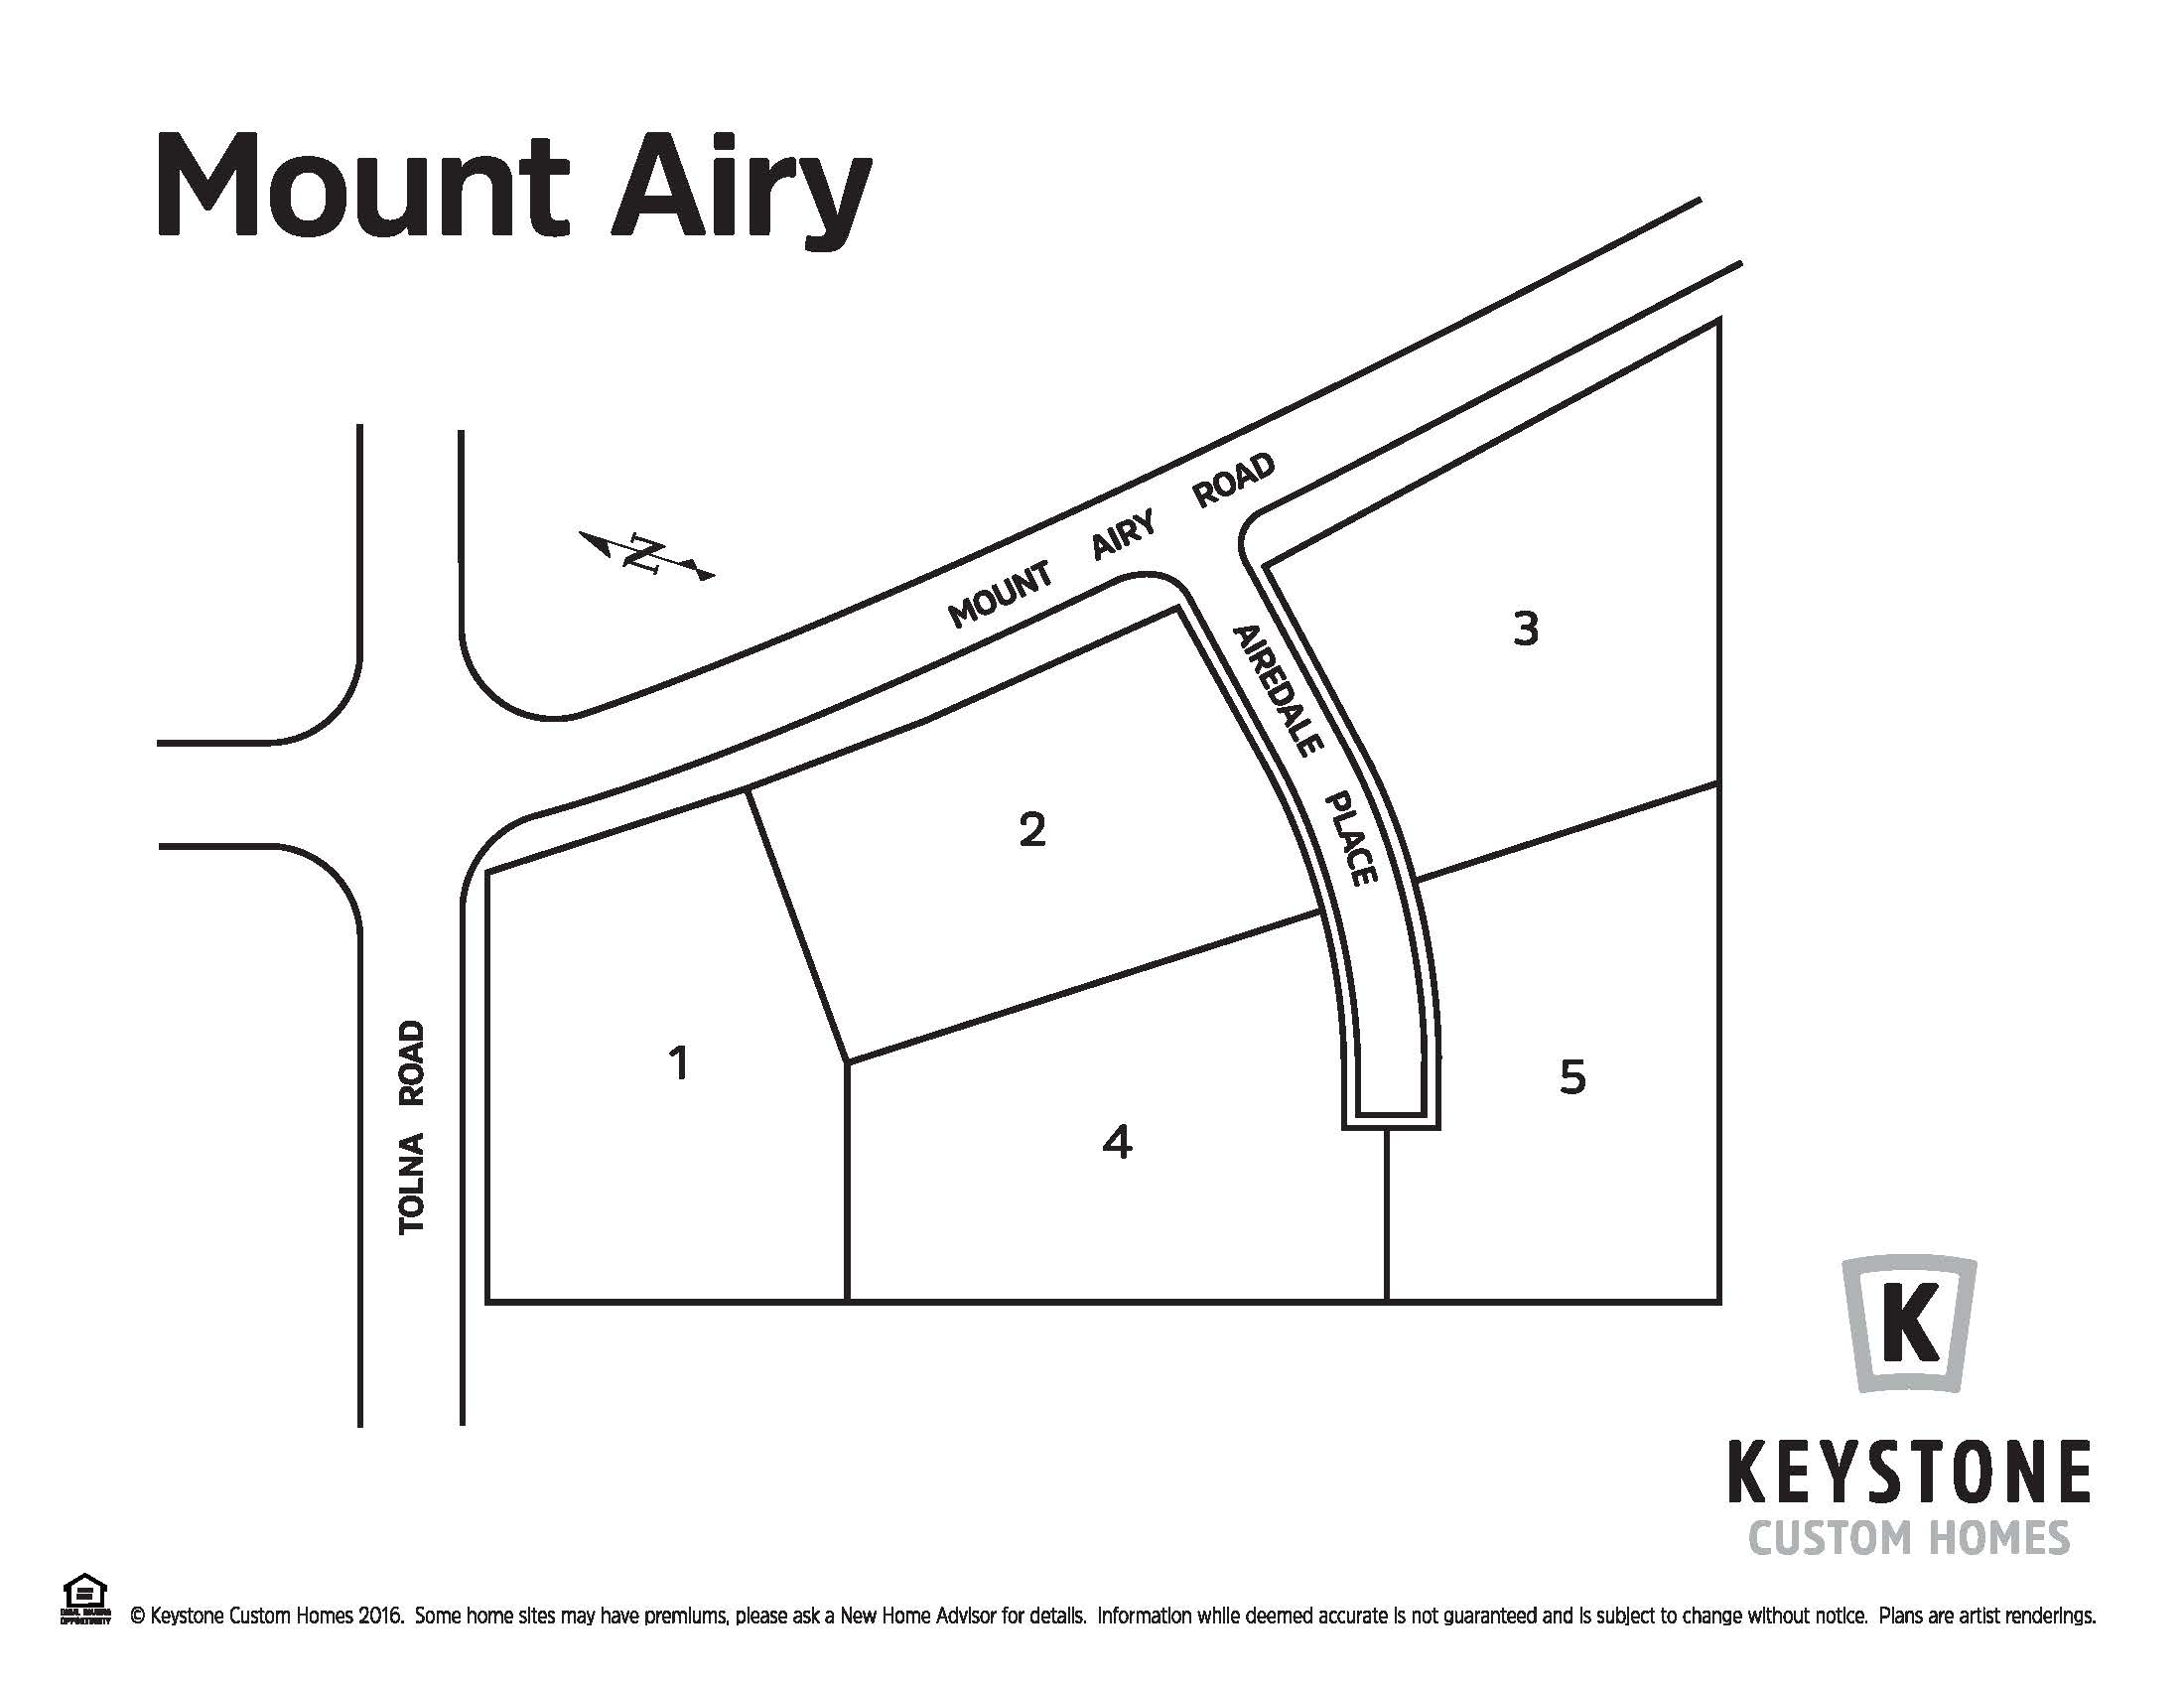 Mount Airy Lot Map Background